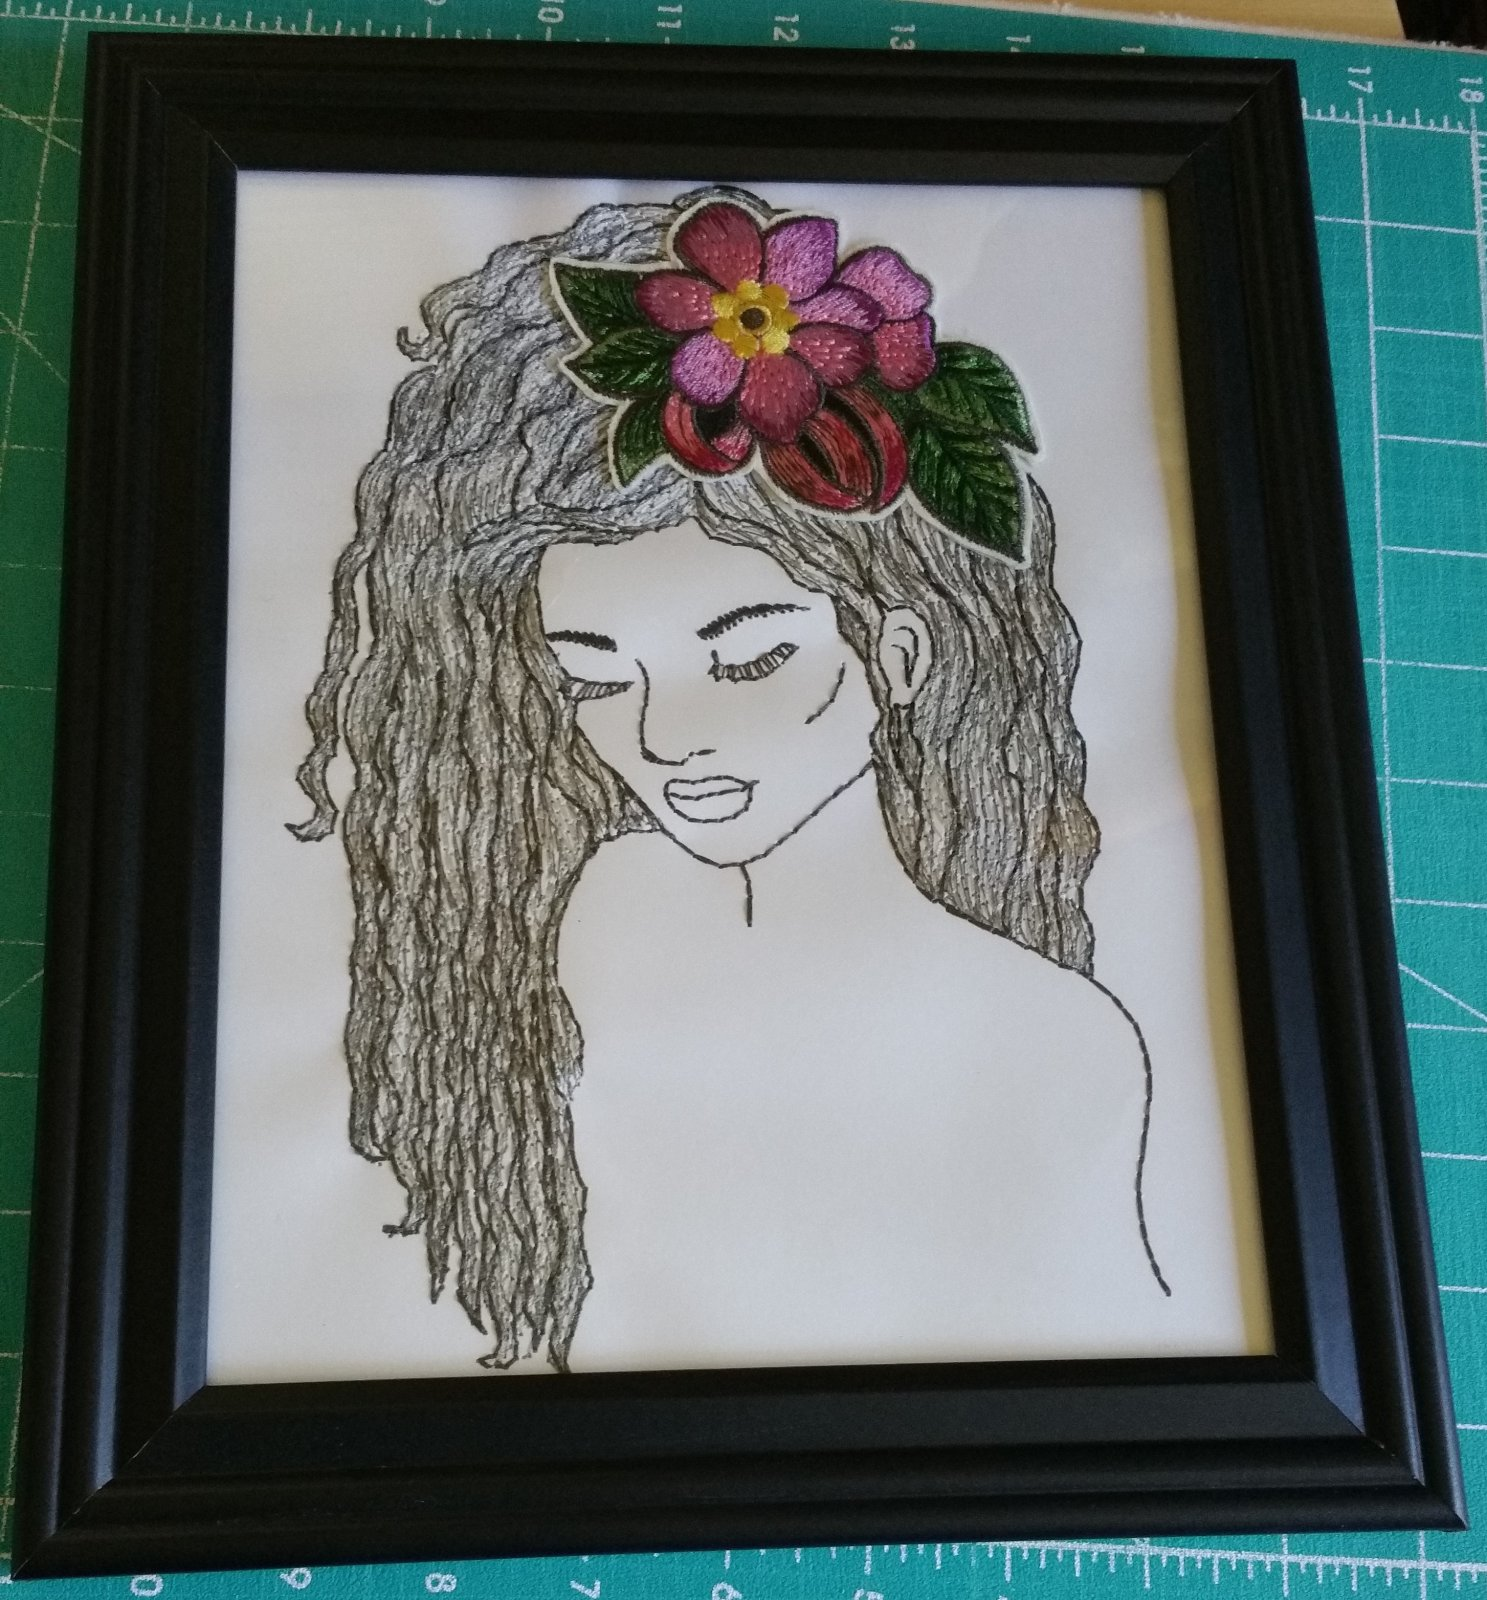 Dimensional Hairstyles Embroidered Picture 2 with frame